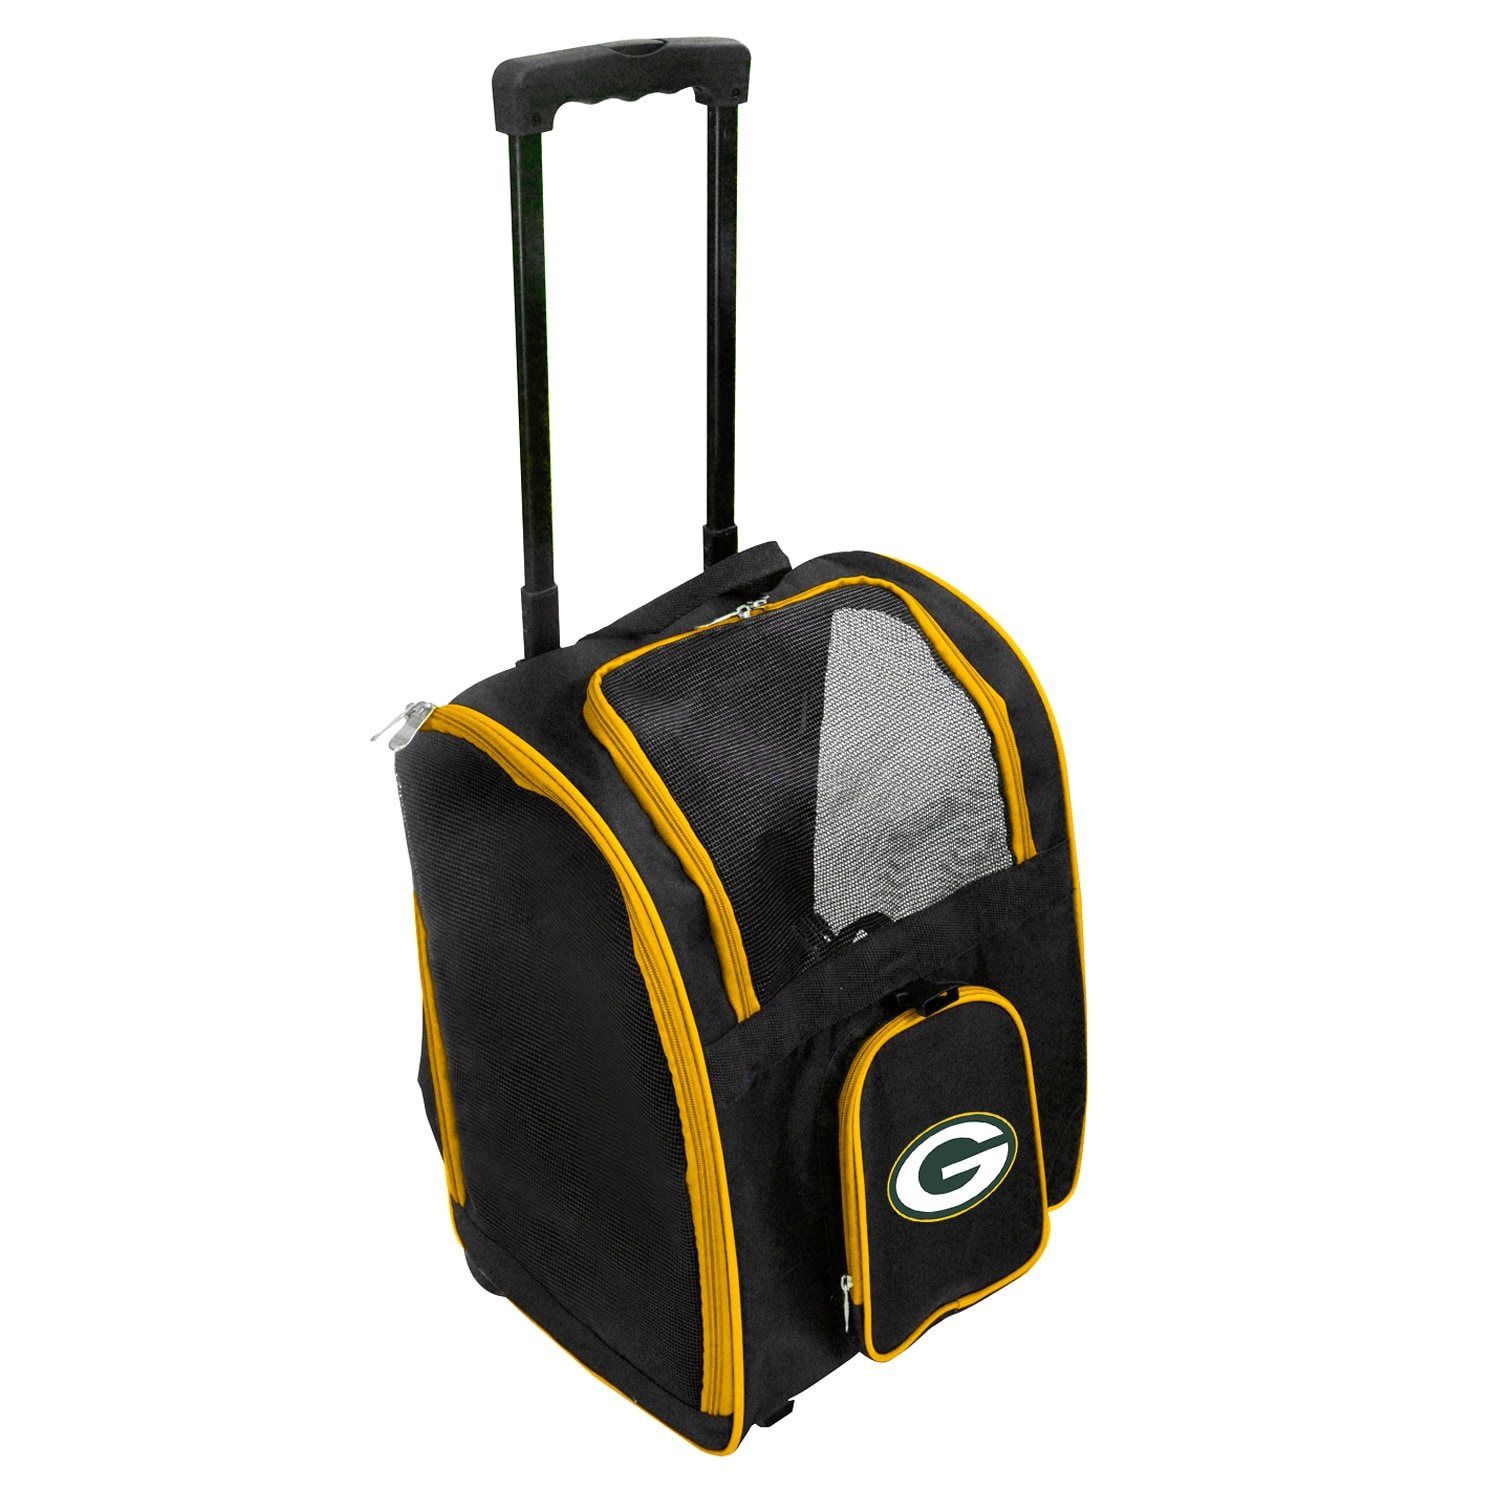 Green Bay Packers 2-Wheeled Roller Pet Carrier - Black